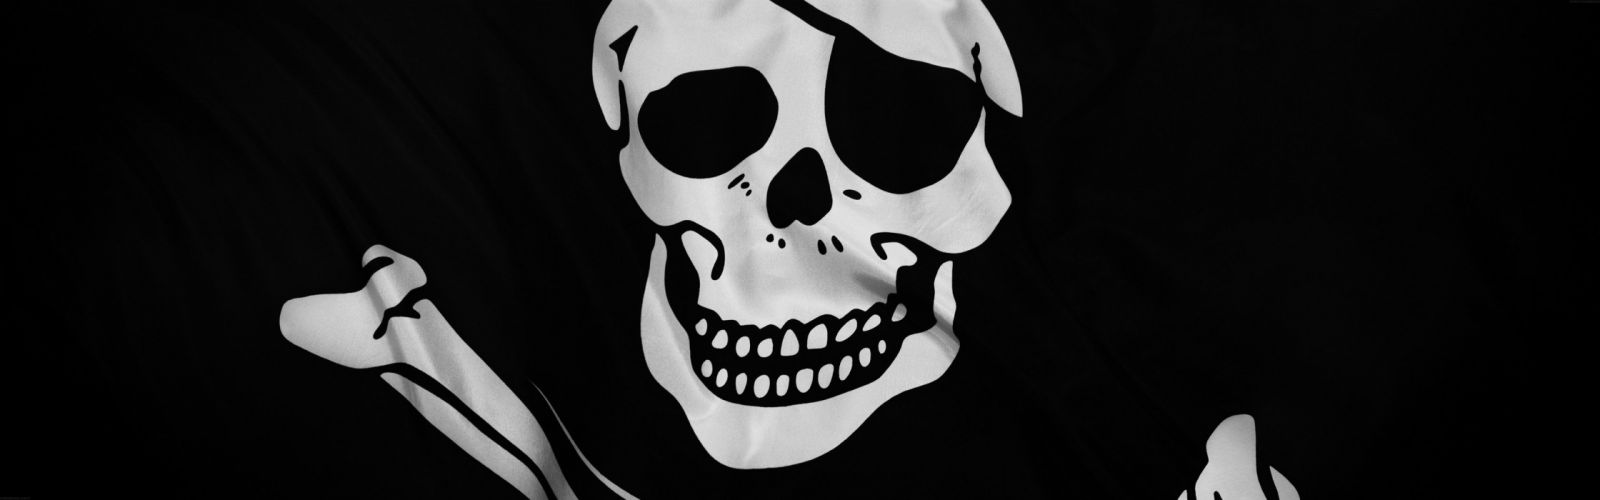 skulls pirates flags Jolly Roger wallpaper